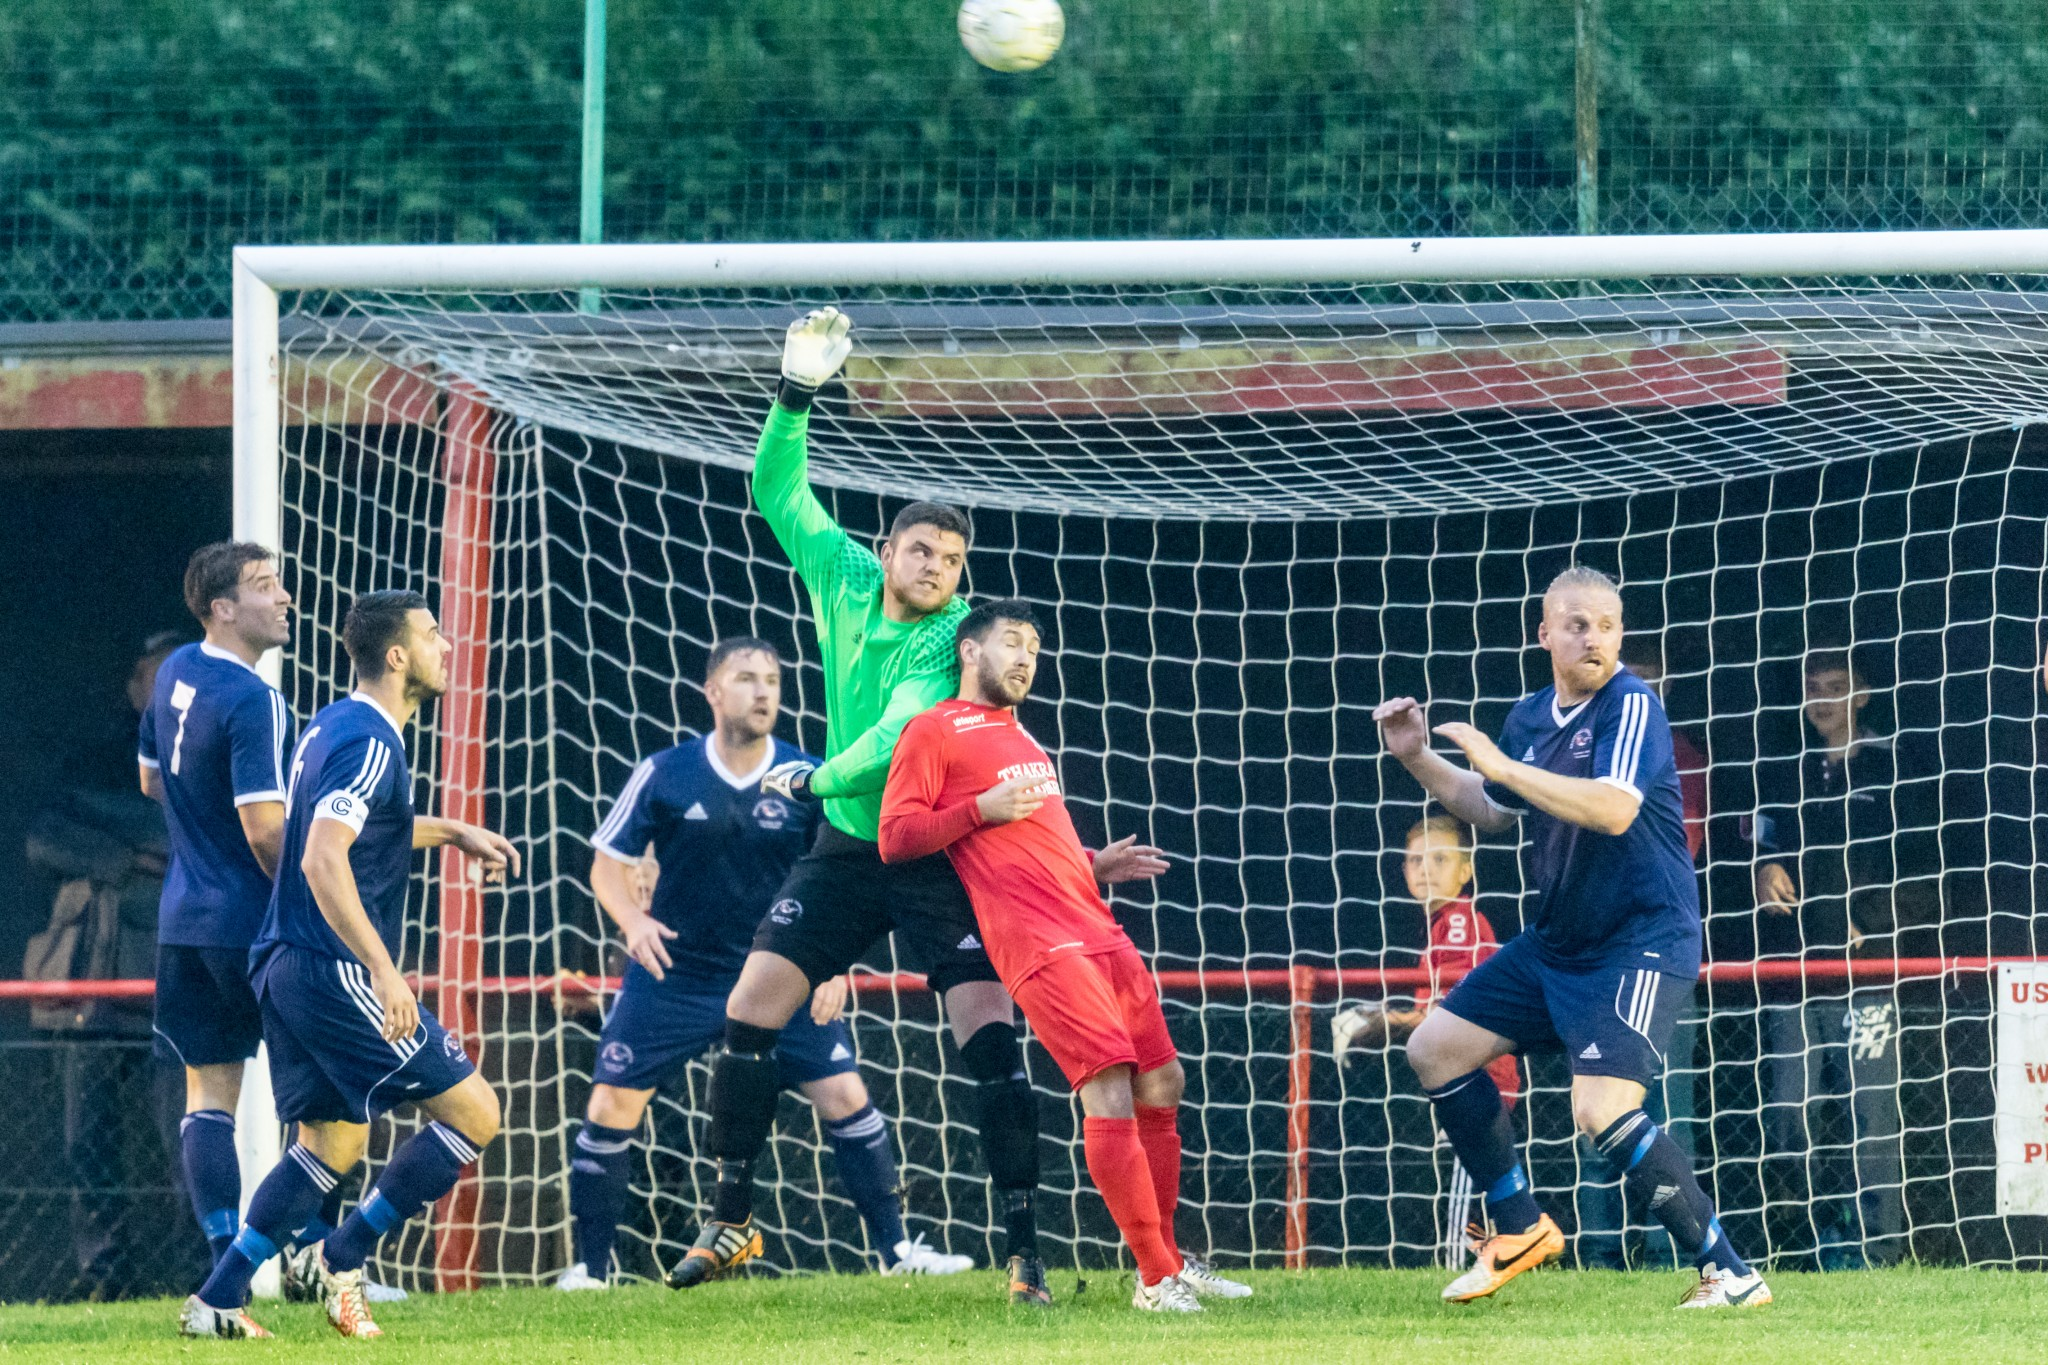 Can Bracknell Town FC overcome Holmer Green at the second attempt?